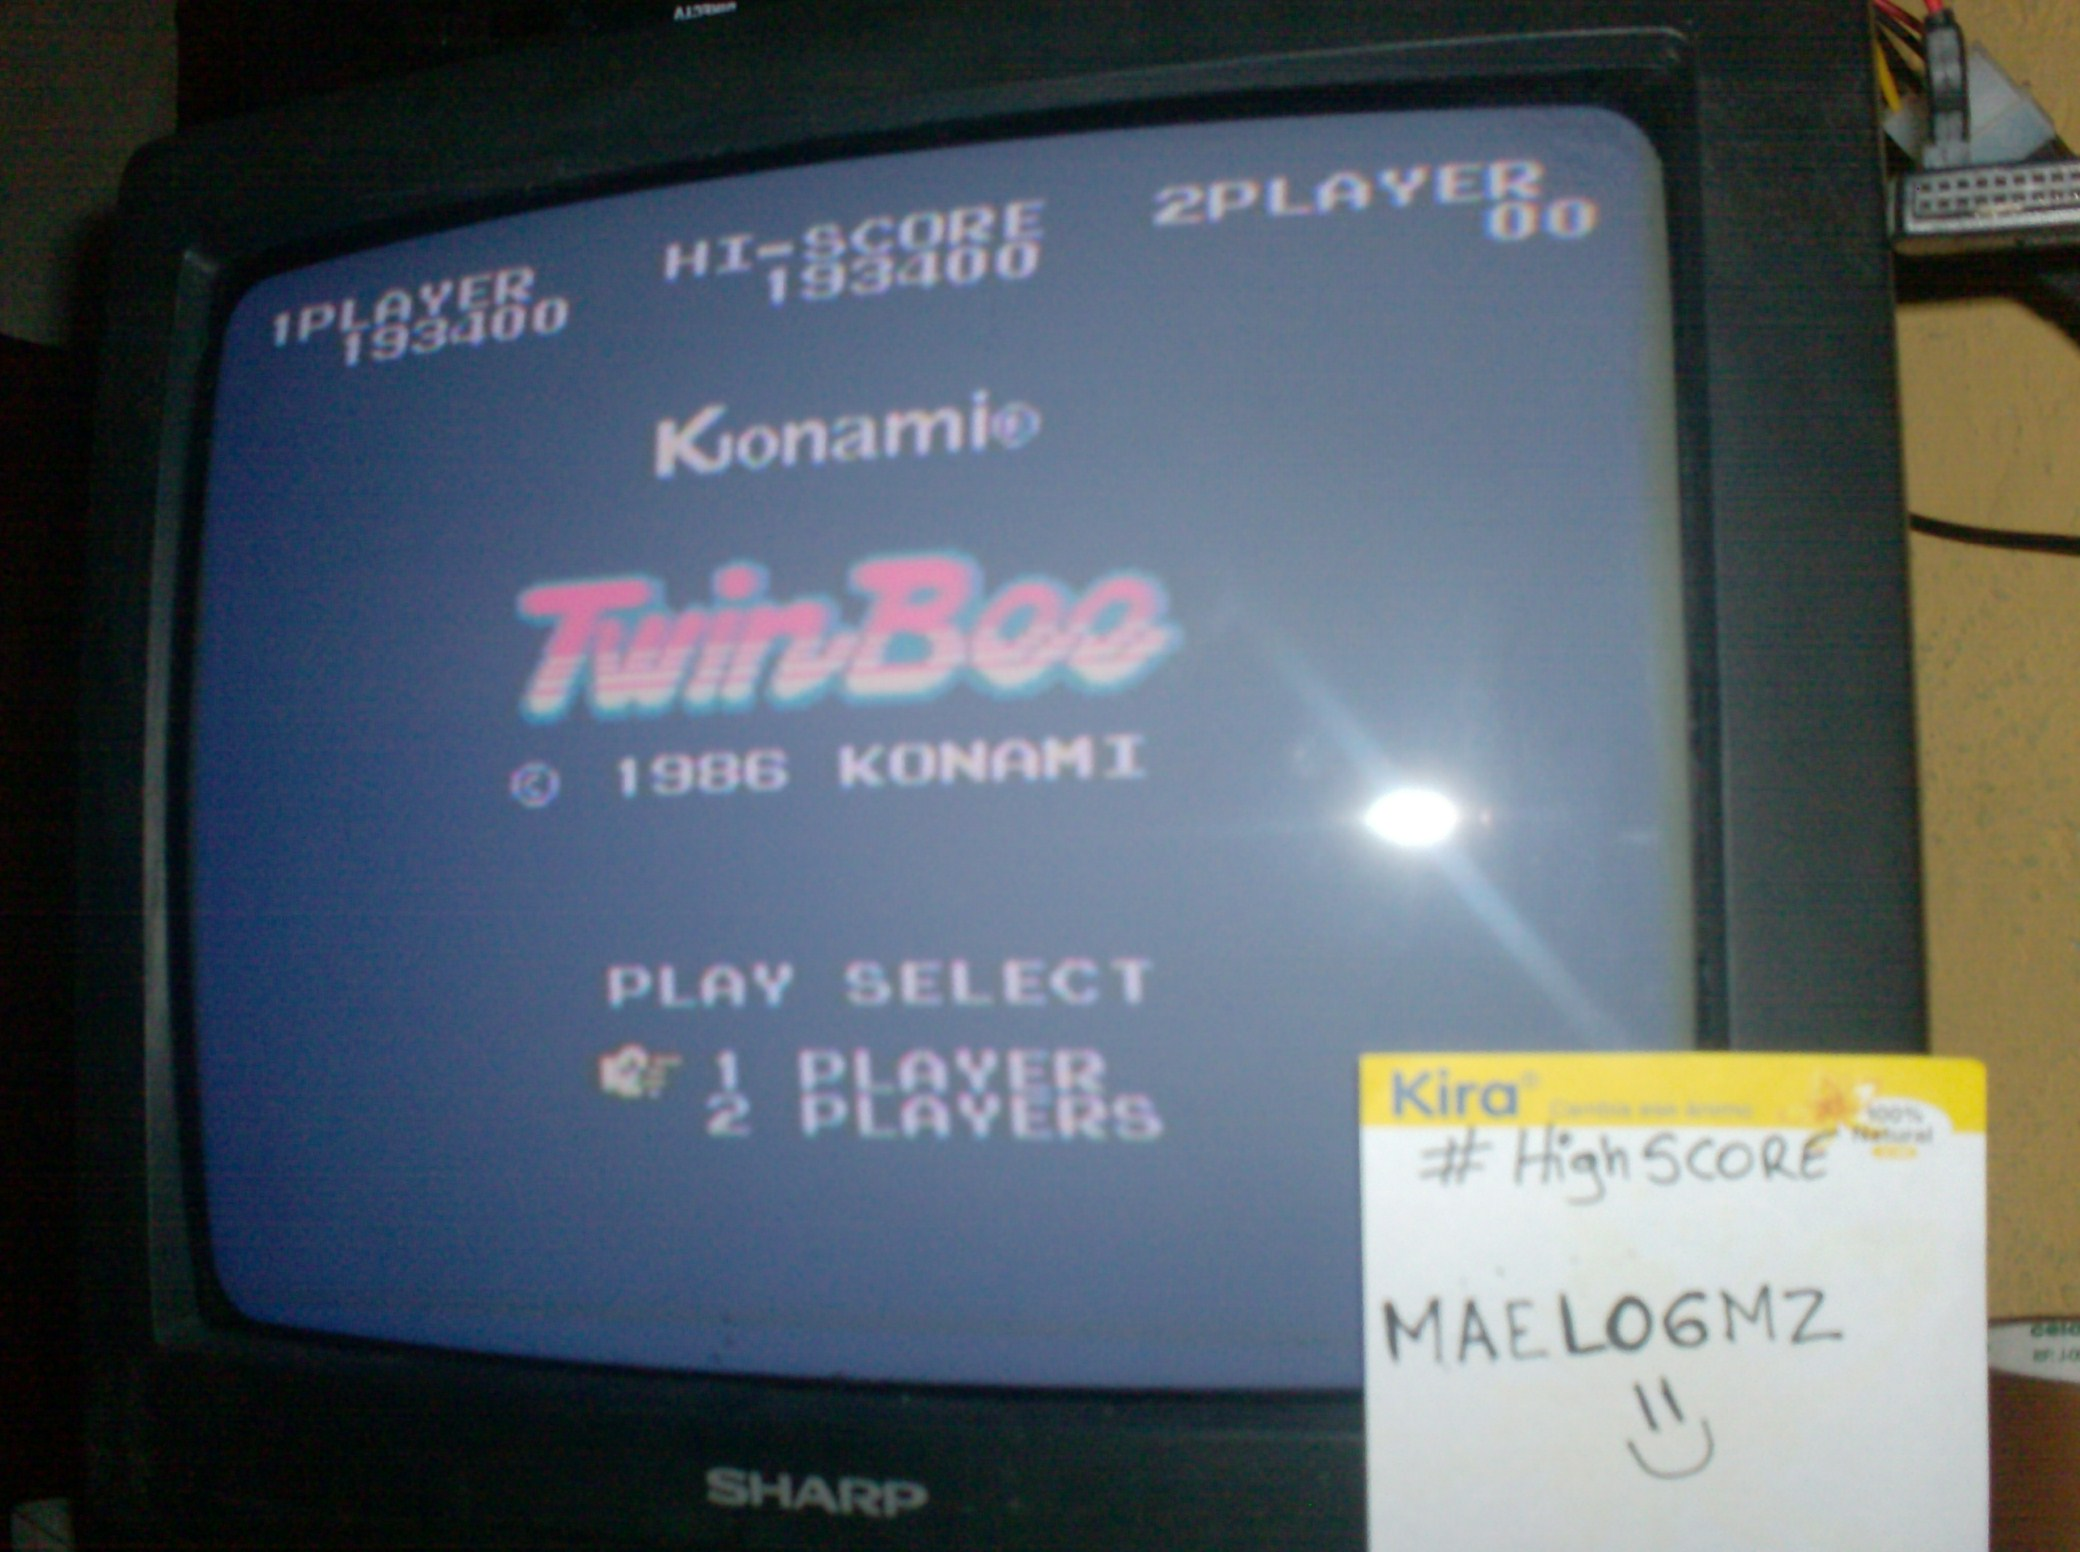 TwinBee 193,400 points